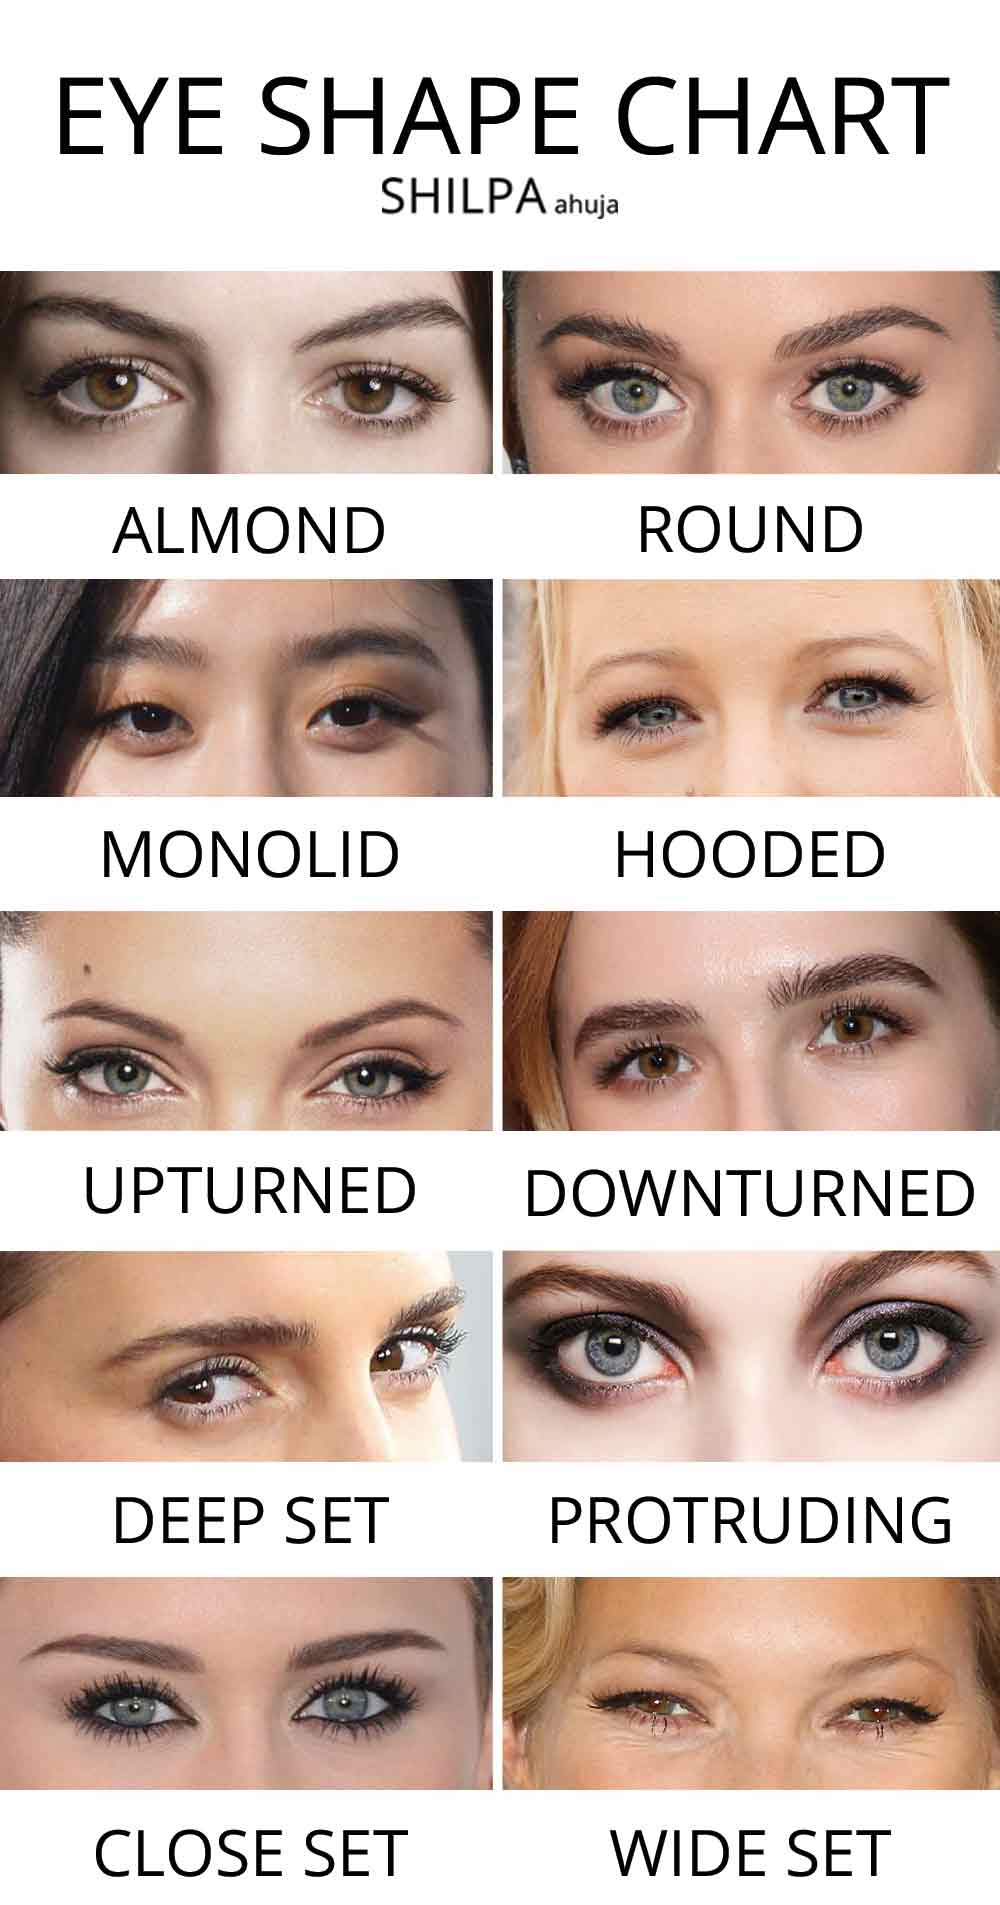 eye-shape-chart-different-types-guide-downturned-hooded-monolid-upturned-almond-round